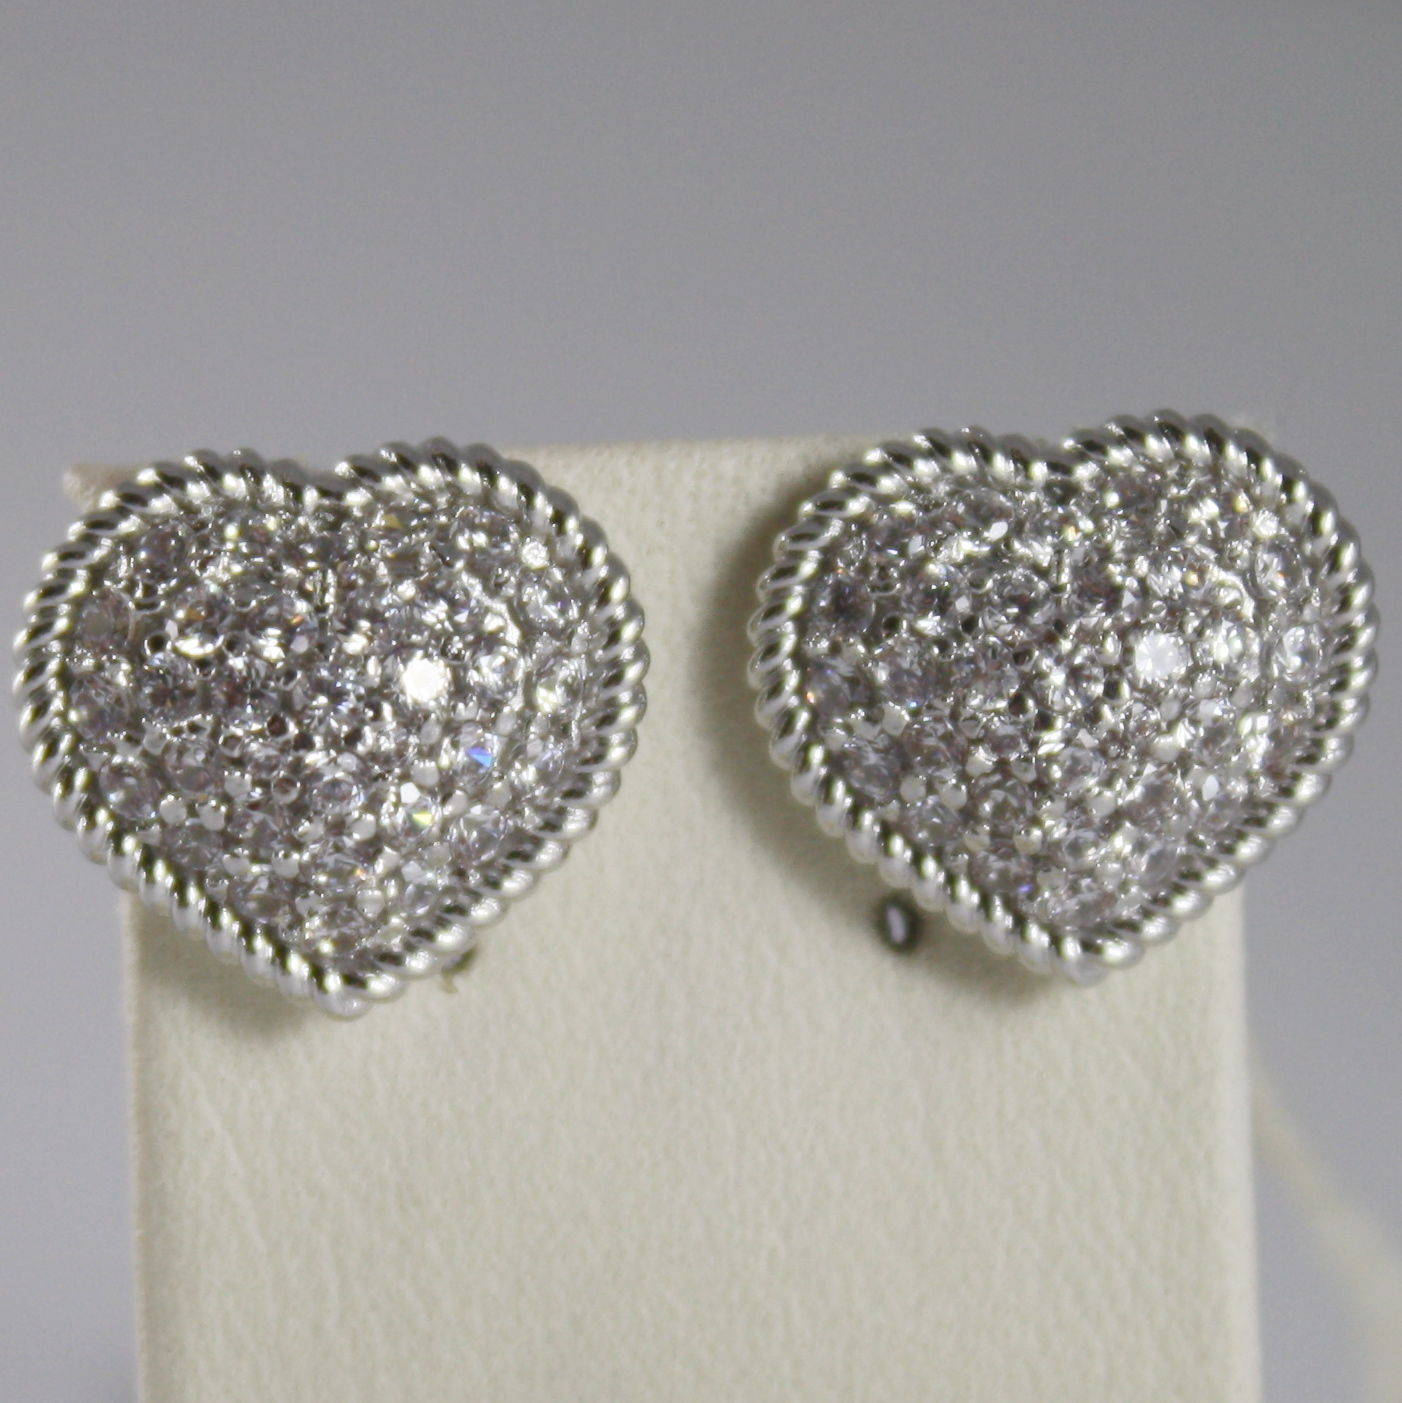 RHODIUM BRONZE EARRINGS HEART, CUBIC ZIRCONIA B14OBB58, BY REBECCA MADE IN ITAL